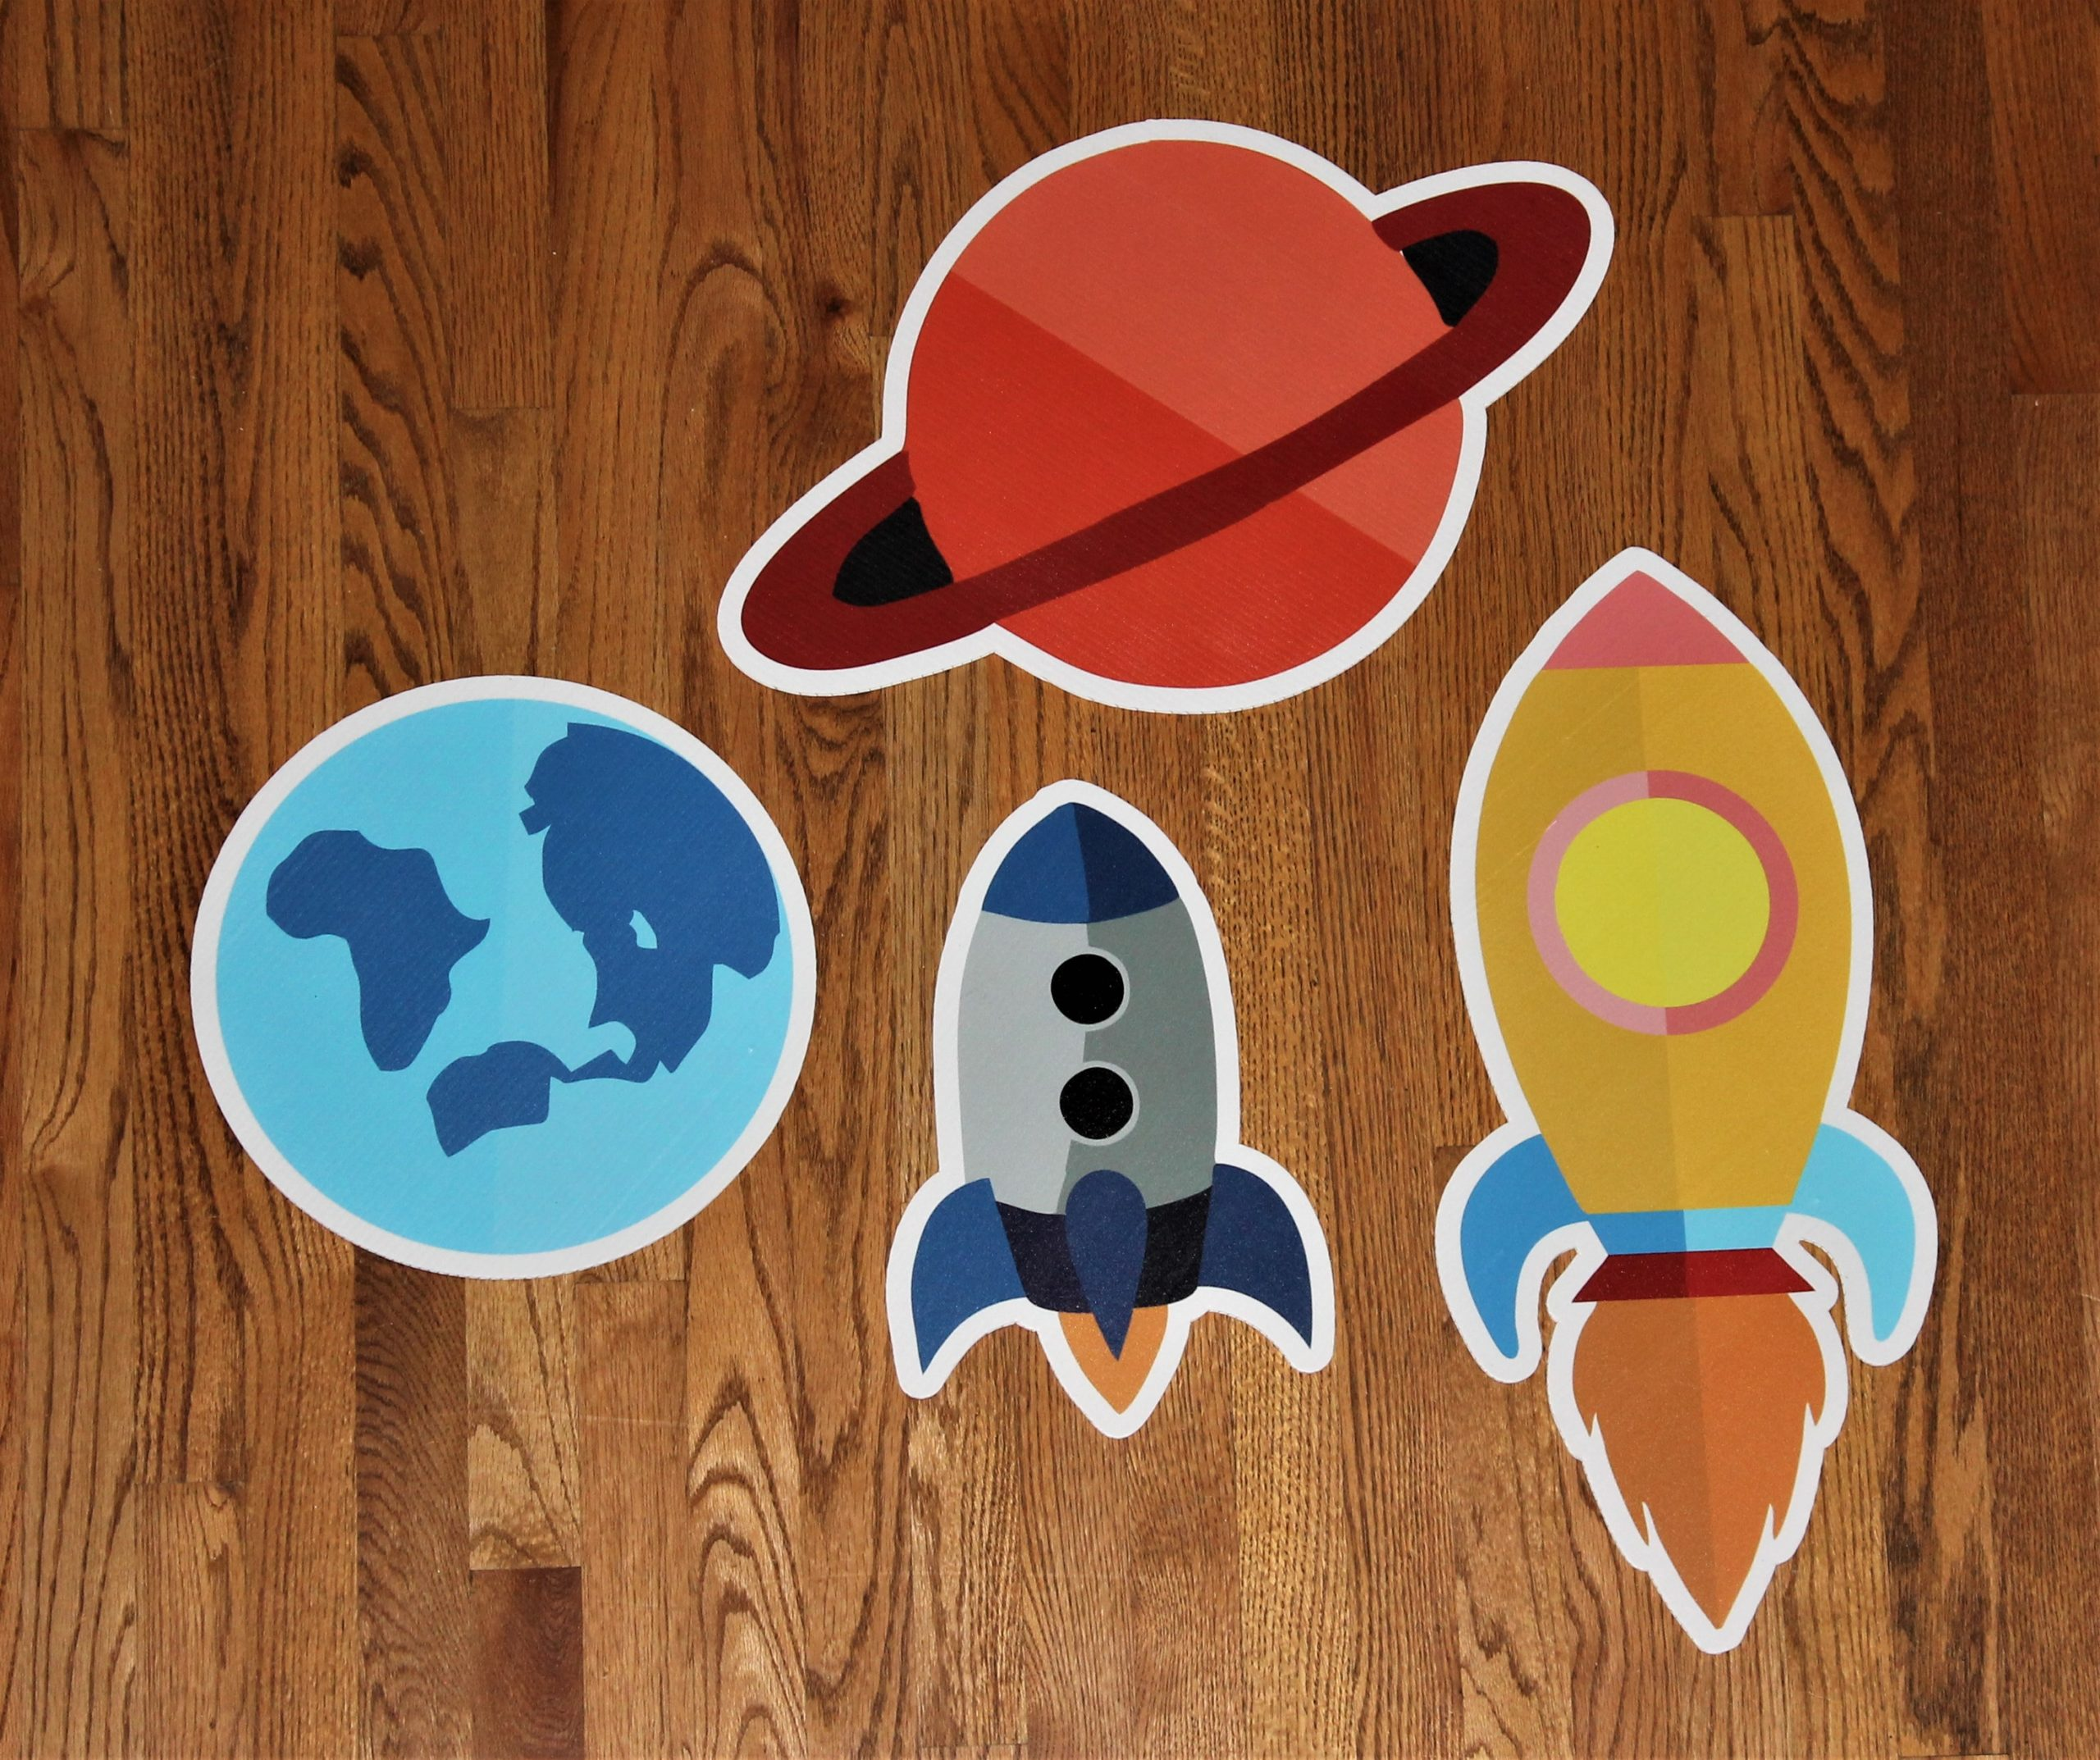 Spaceships and Planets